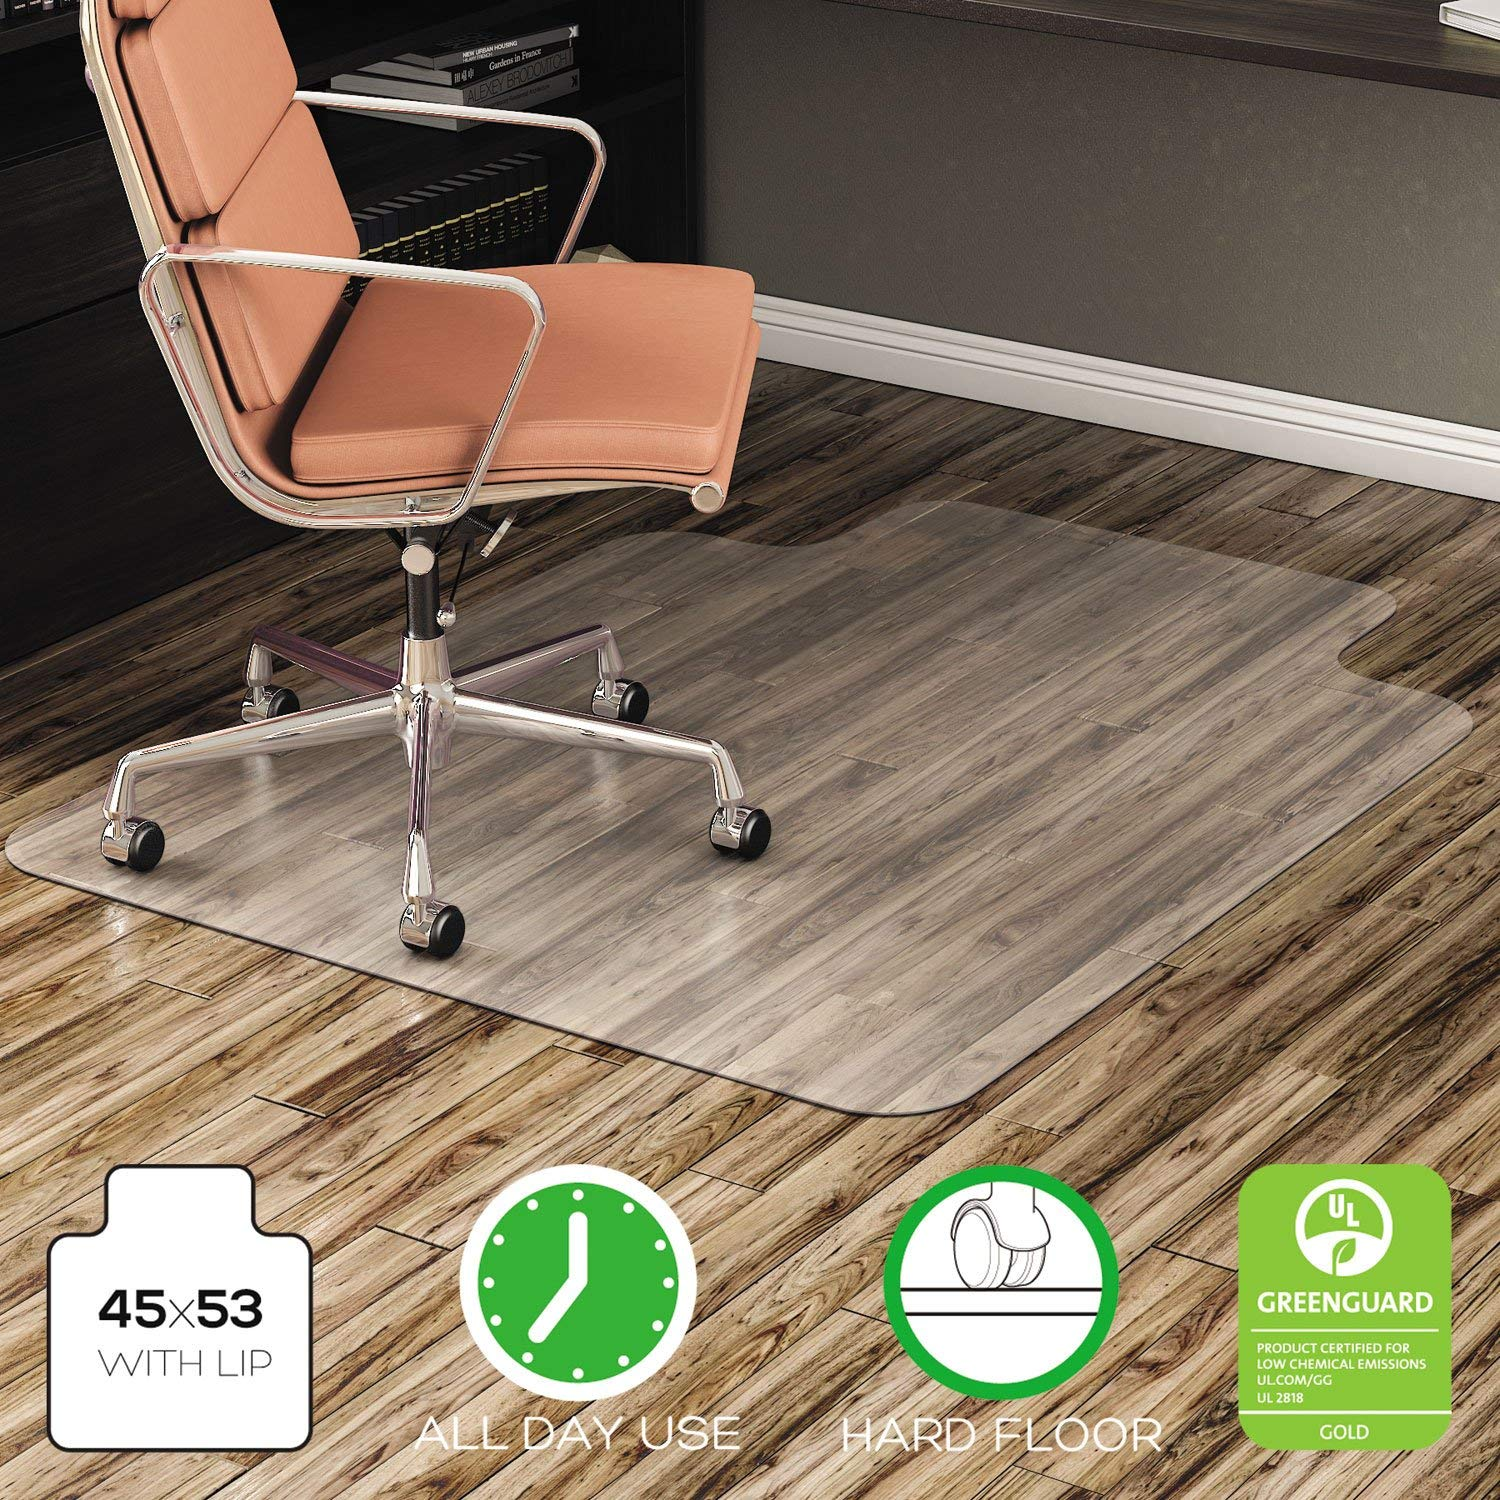 deflecto CM21232 EconoMat Anytime Use Chair Mat for Hard Floor, 45 x 53 w/Lip, Clear